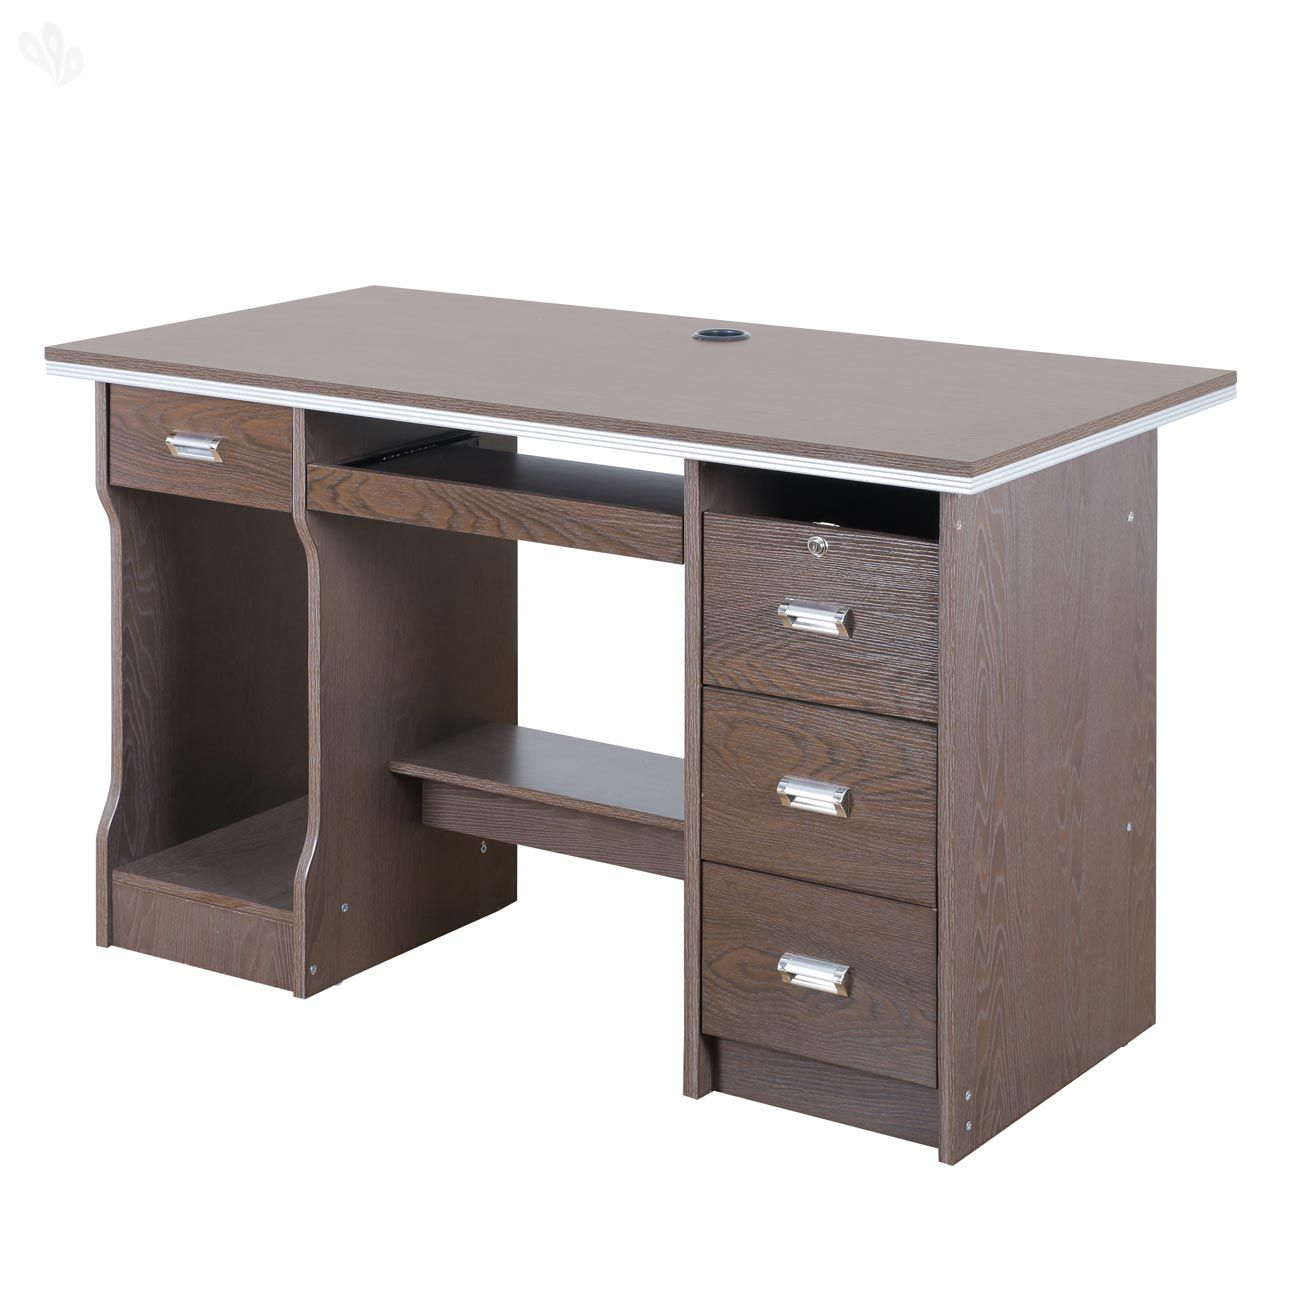 tables for office. Office Table Manufacturers In Gurgaon Tables For O